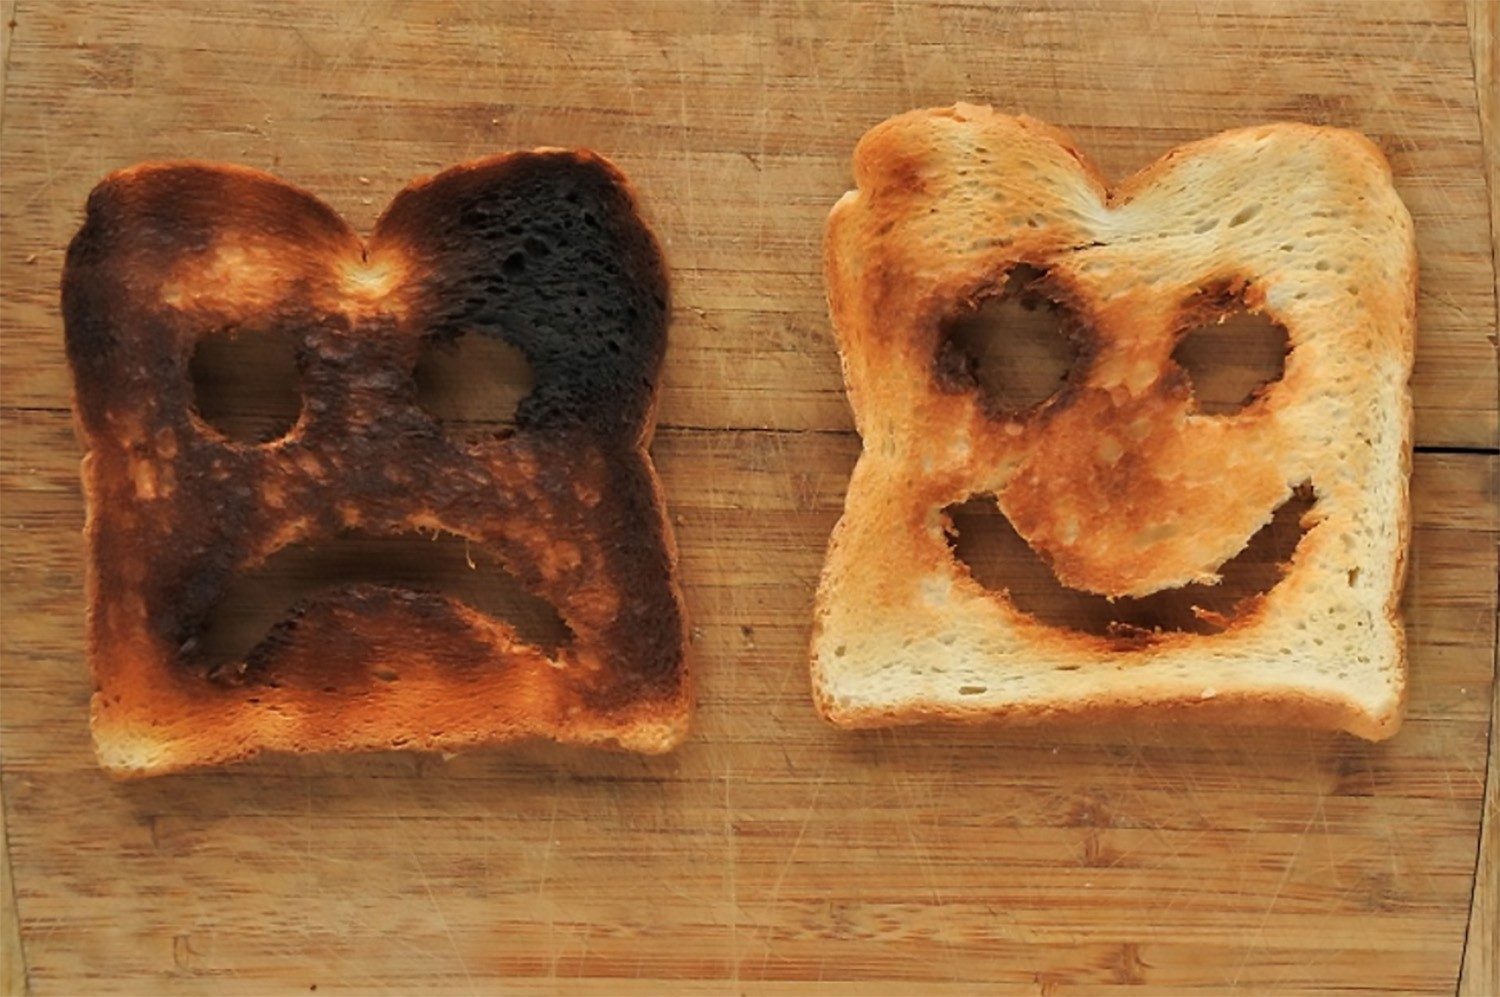 burned slice of toast looking sad next to perfectly toasted slice looking happy